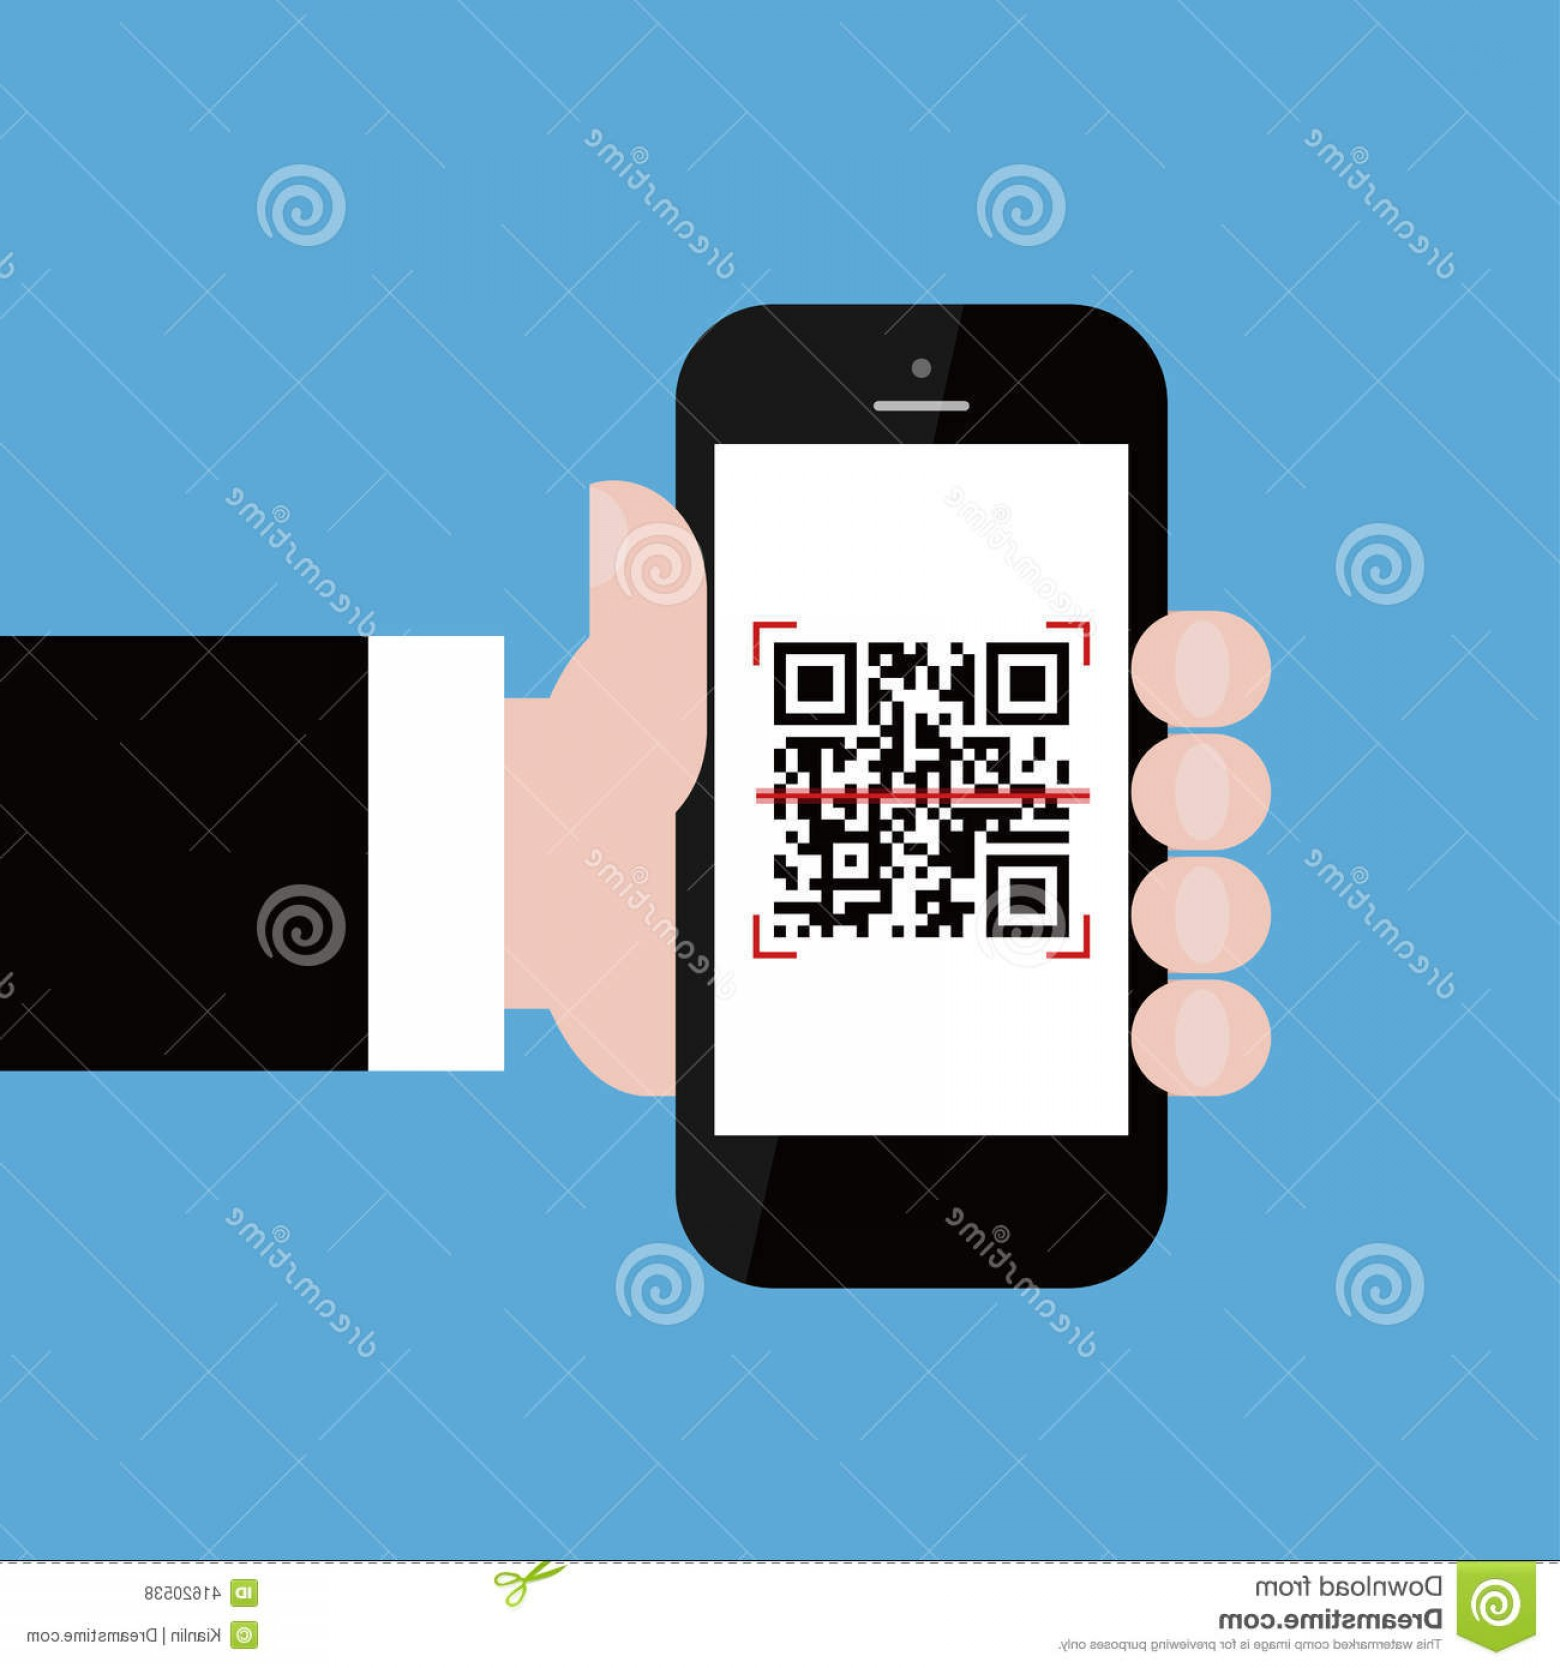 QR Mobile Phone Vector: Stock Illustration Mobile Phone Businessman Hand Scanning Qr Code Vector Illustration Image